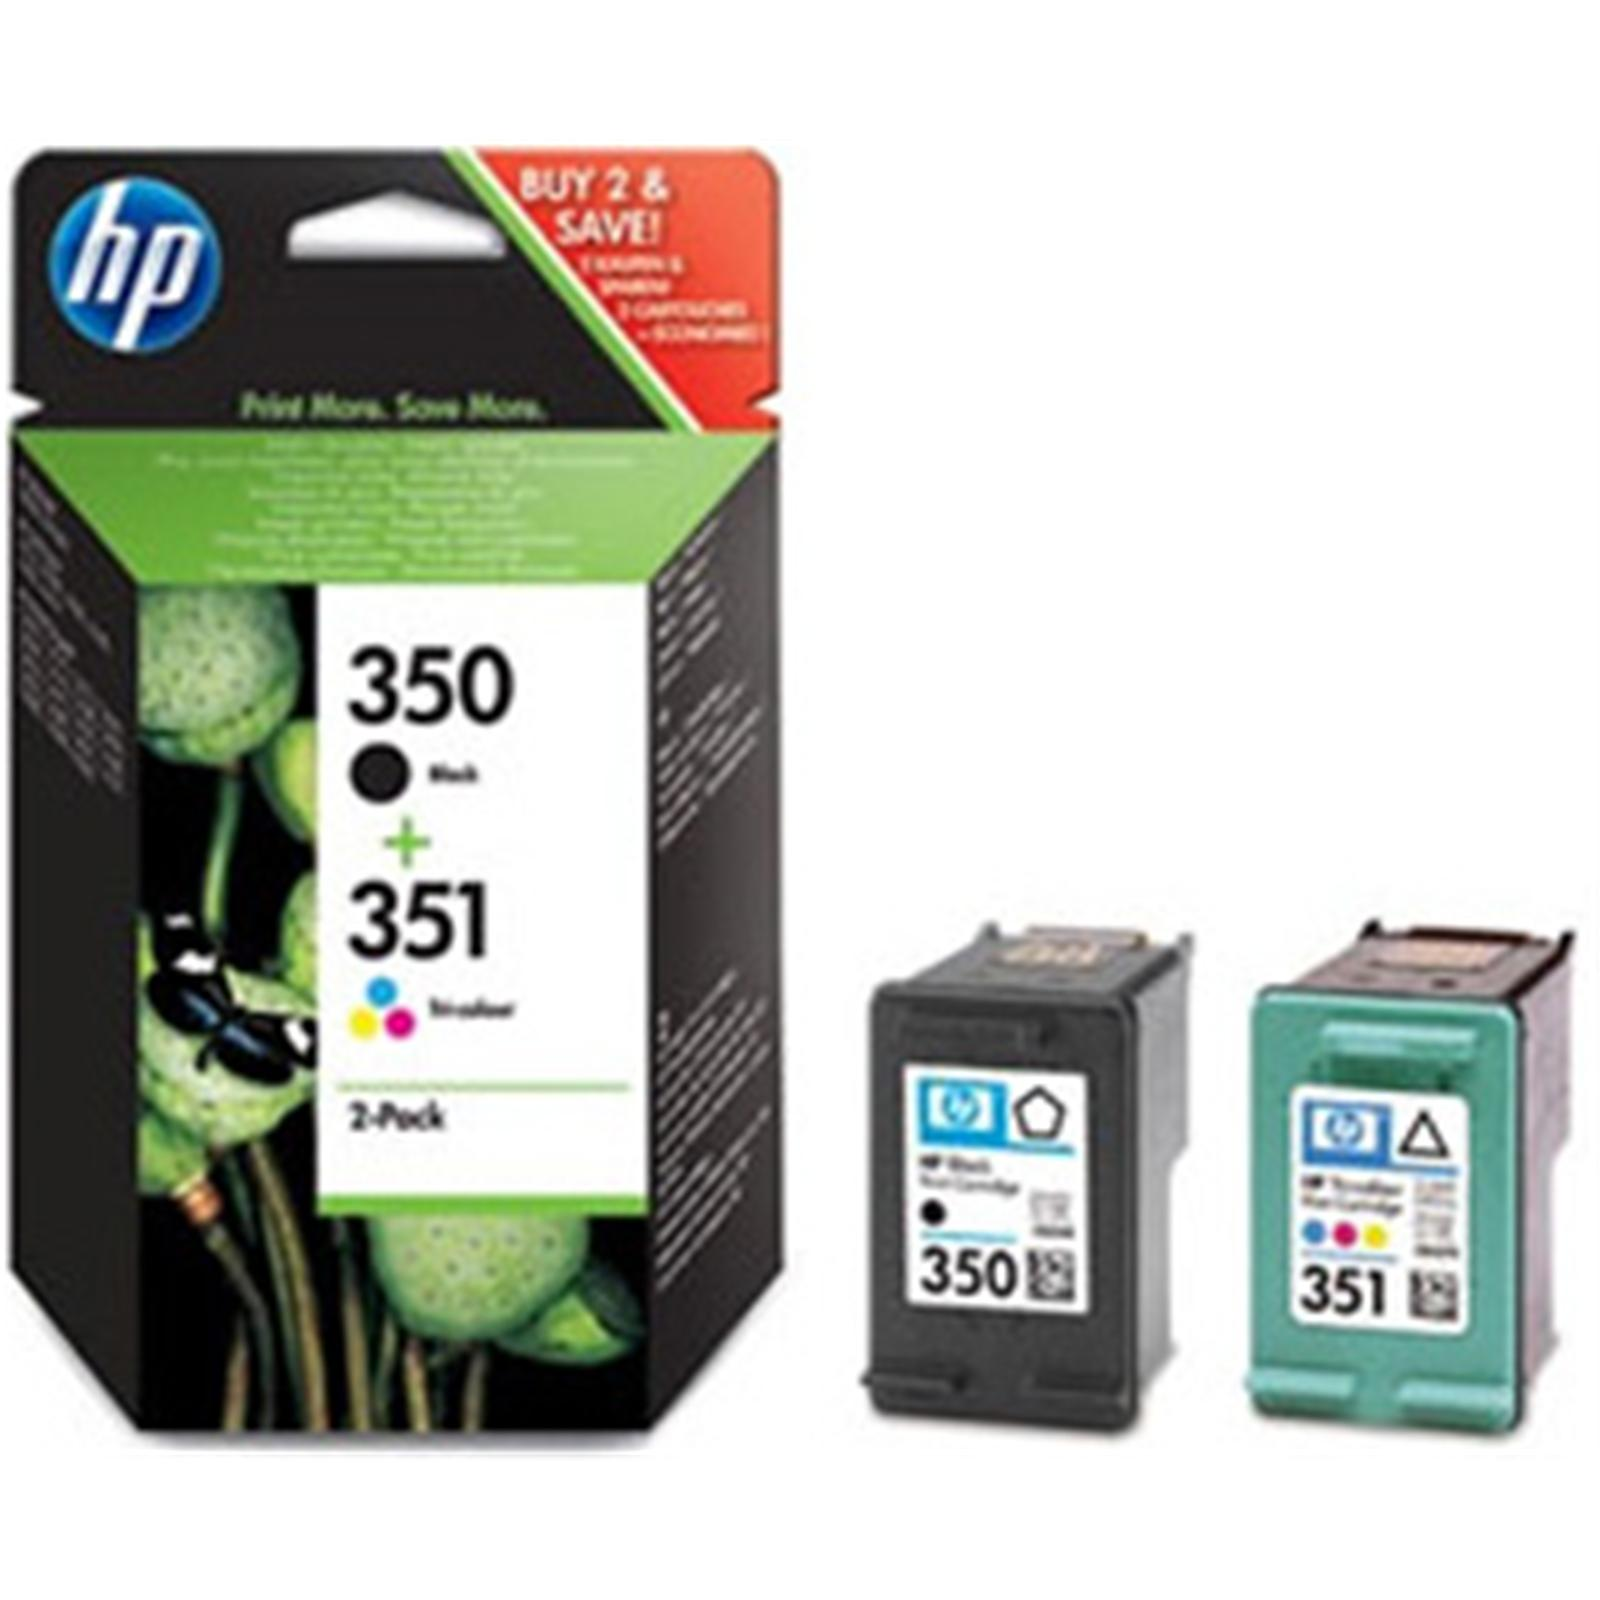 HP-350-HP-351--SD412EE--Combo-pack